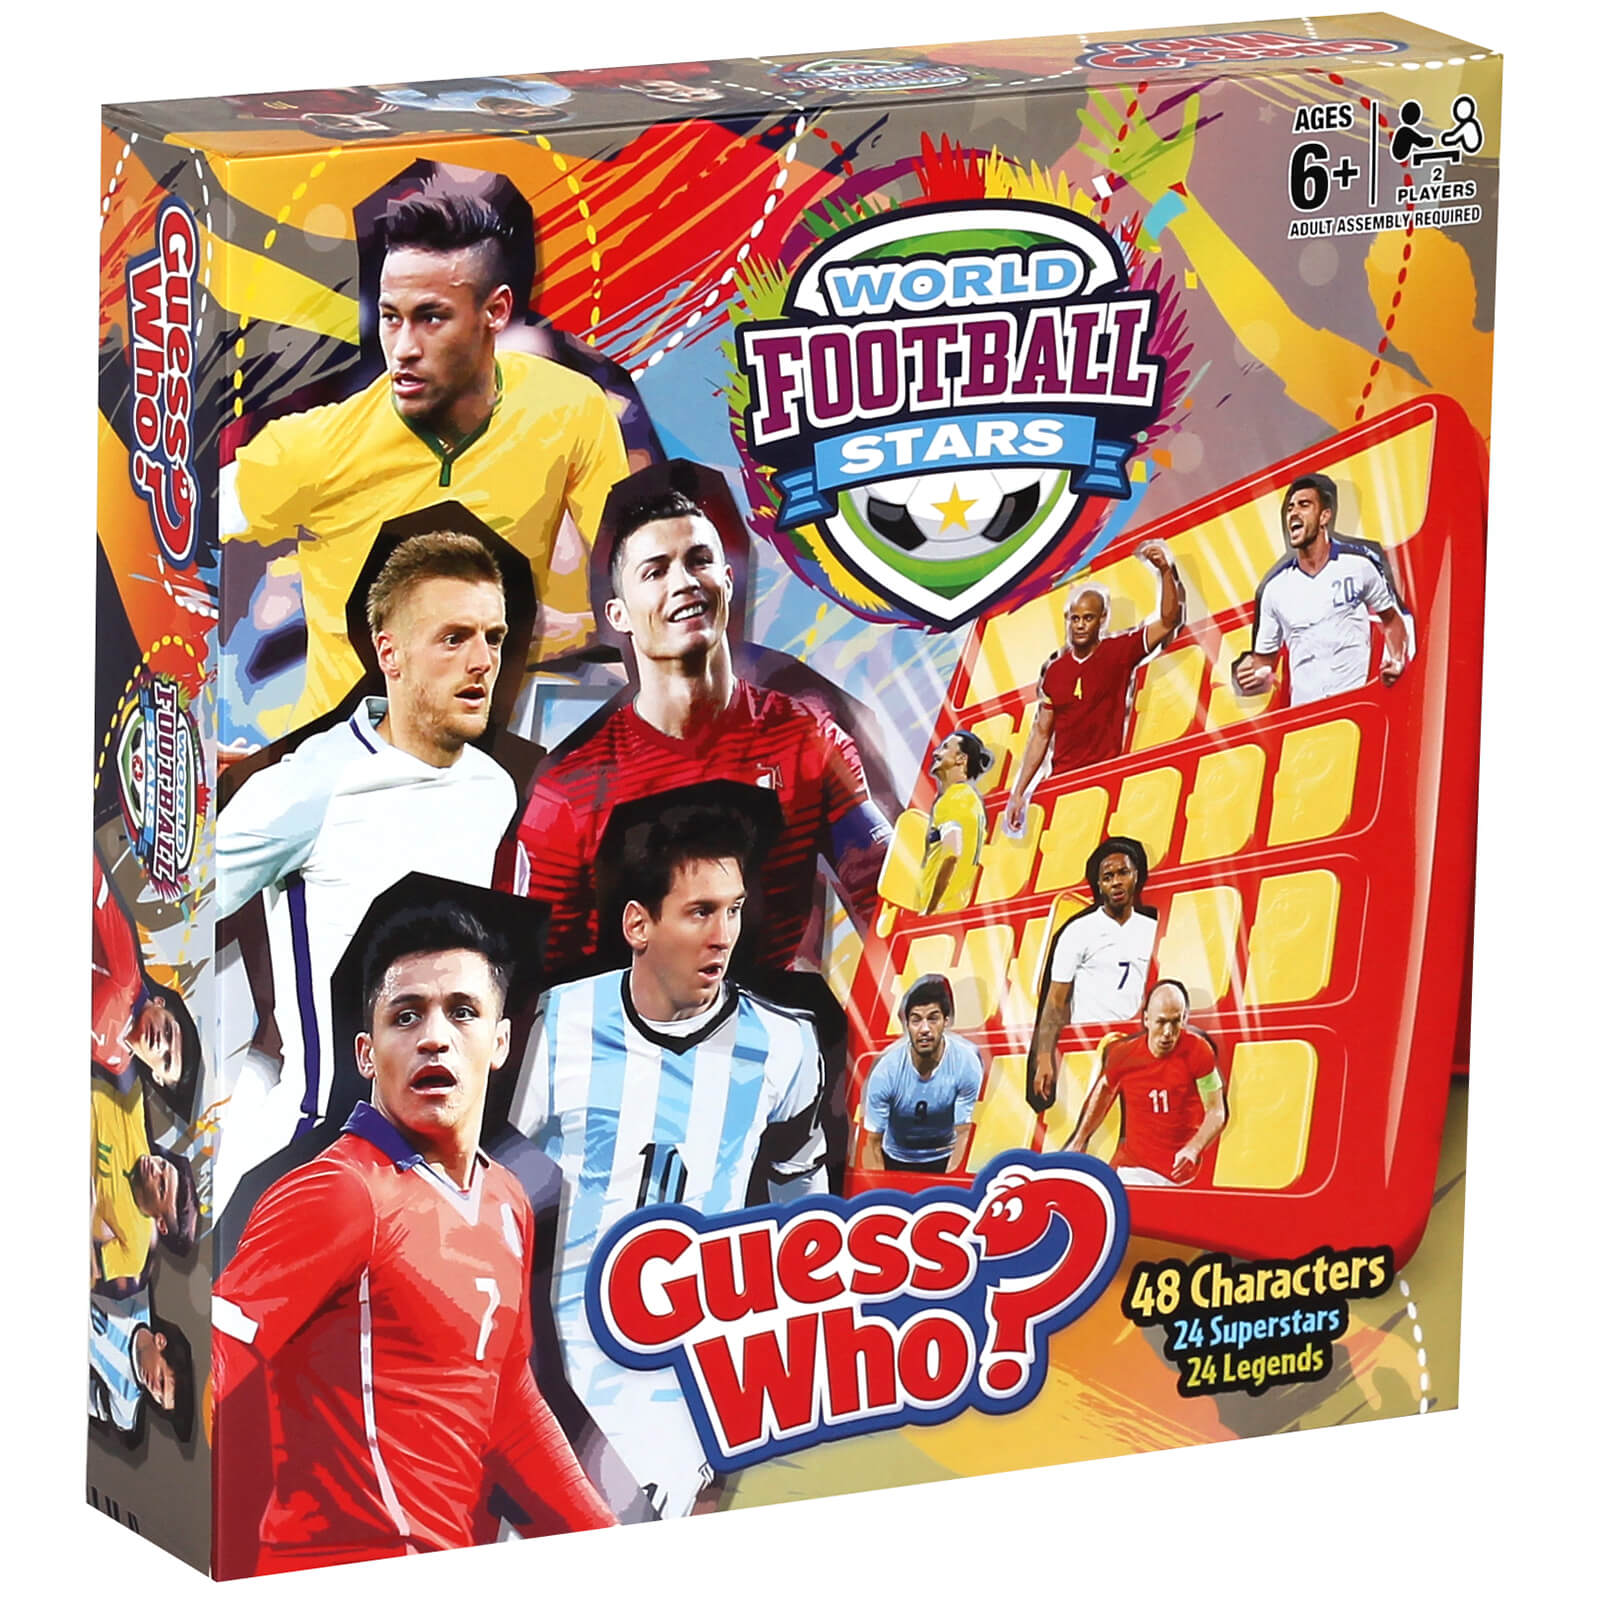 Image of Guess Who? Board Game - World Football Stars Edition